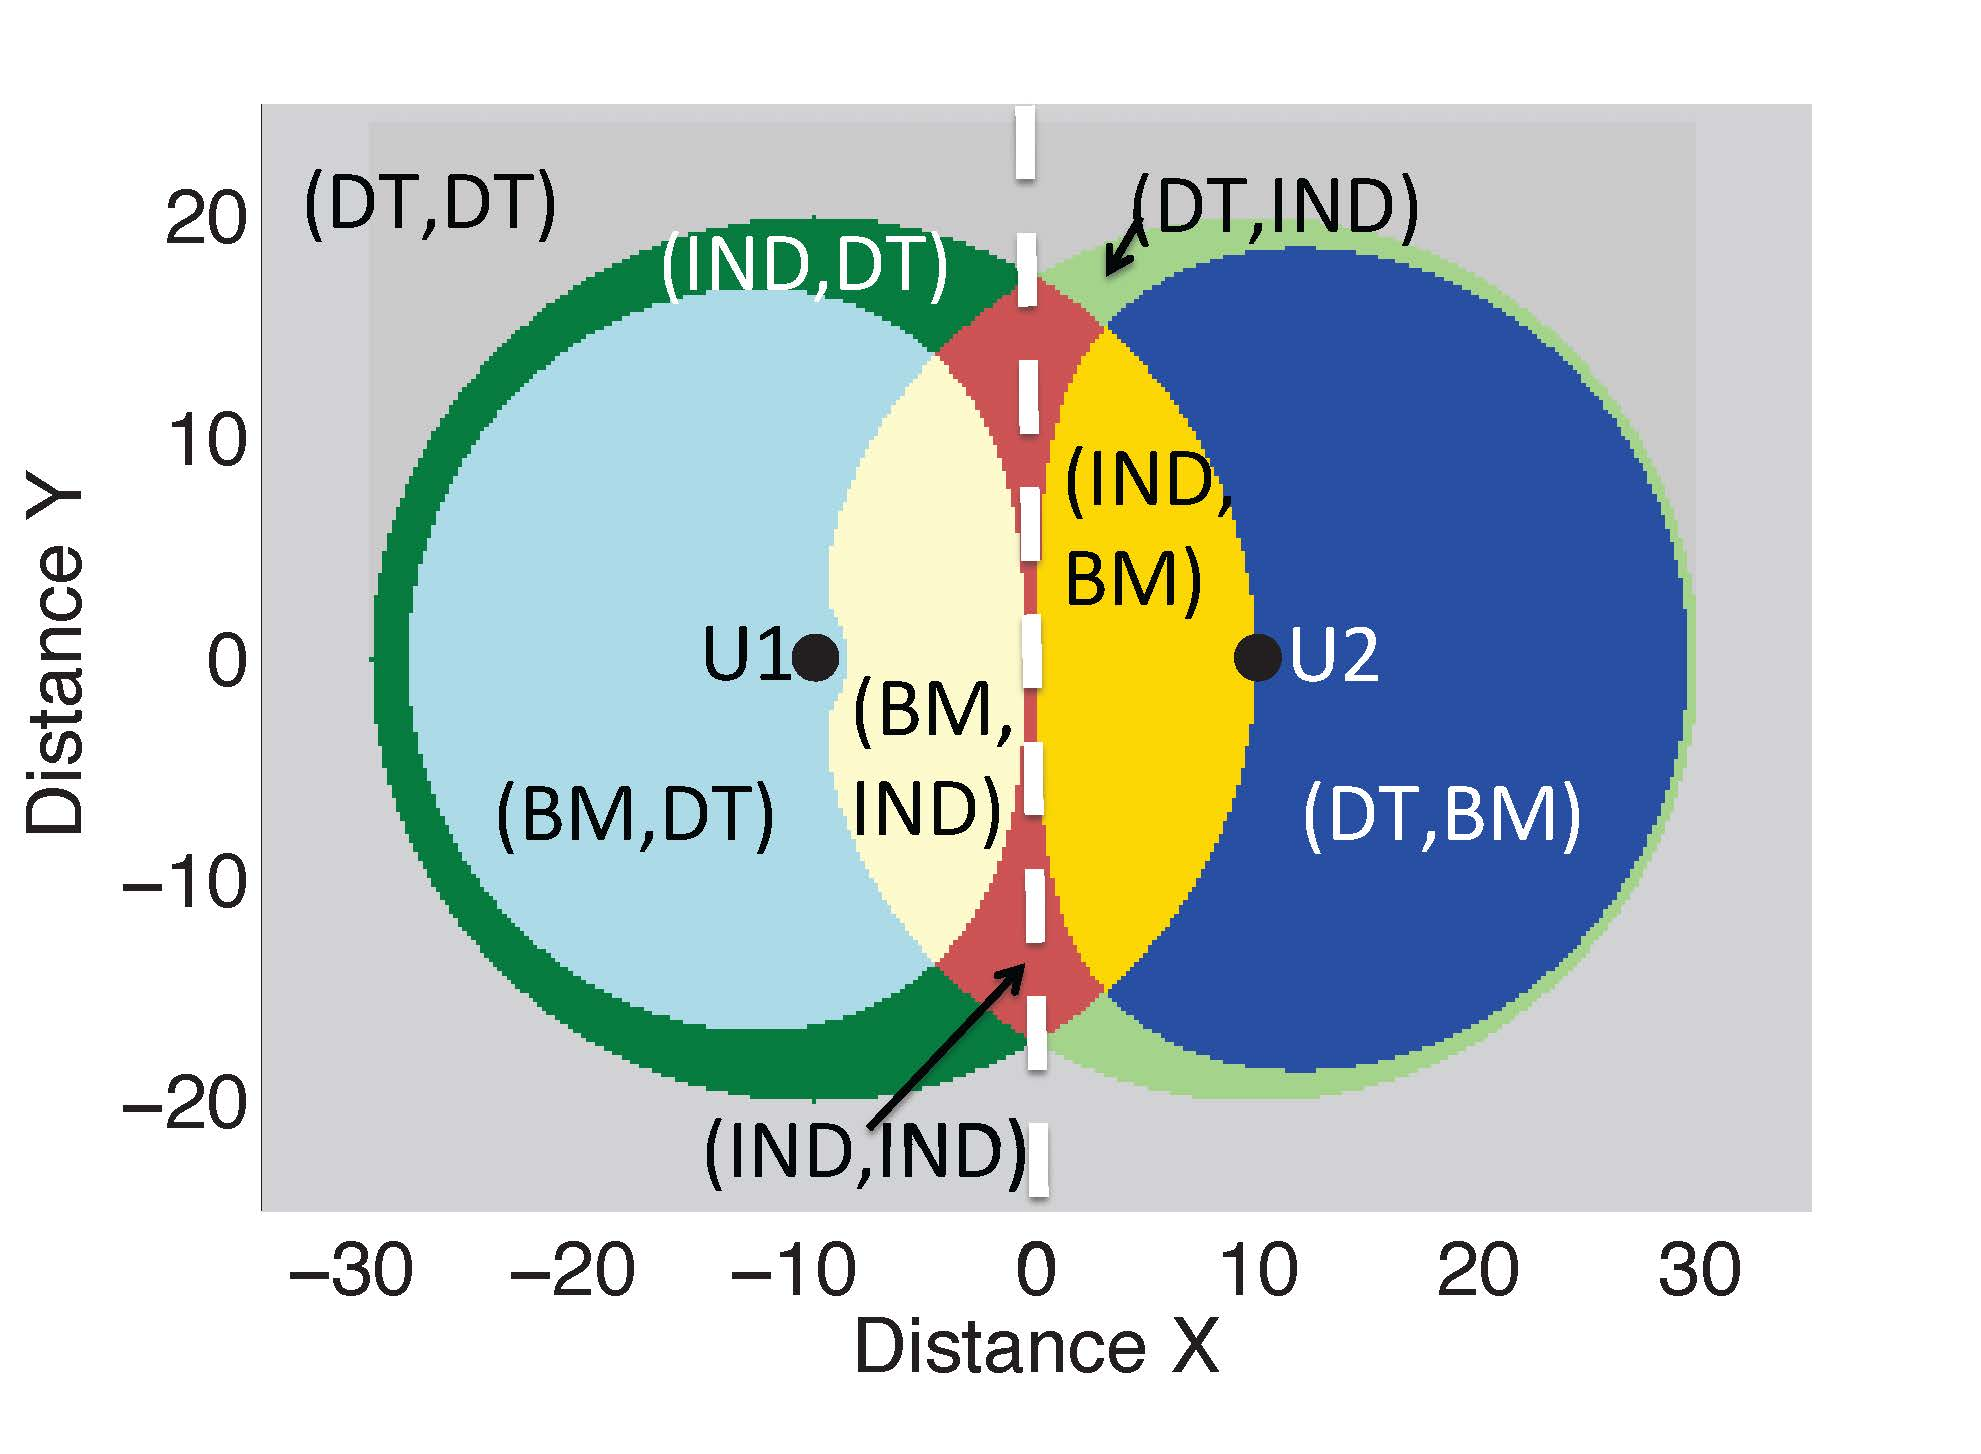 Figure 4. Optimal transmission as a function of distance for FDD system